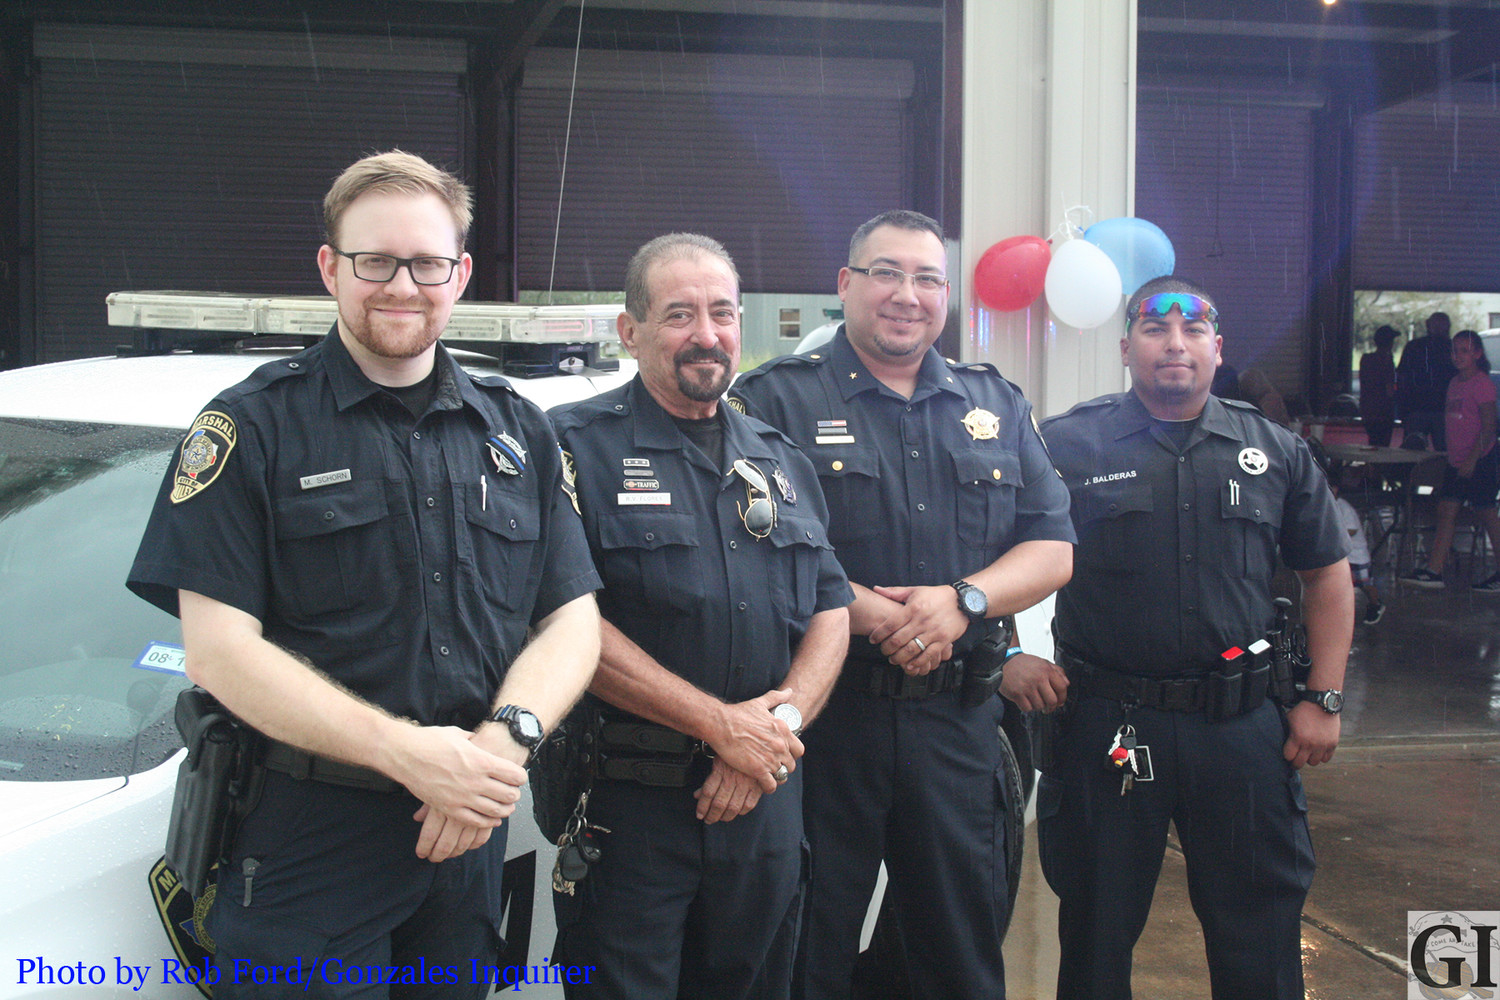 Nixon and Smiley held about 100 people at their respective National Night Out events despite the heavy rains Tuesday.